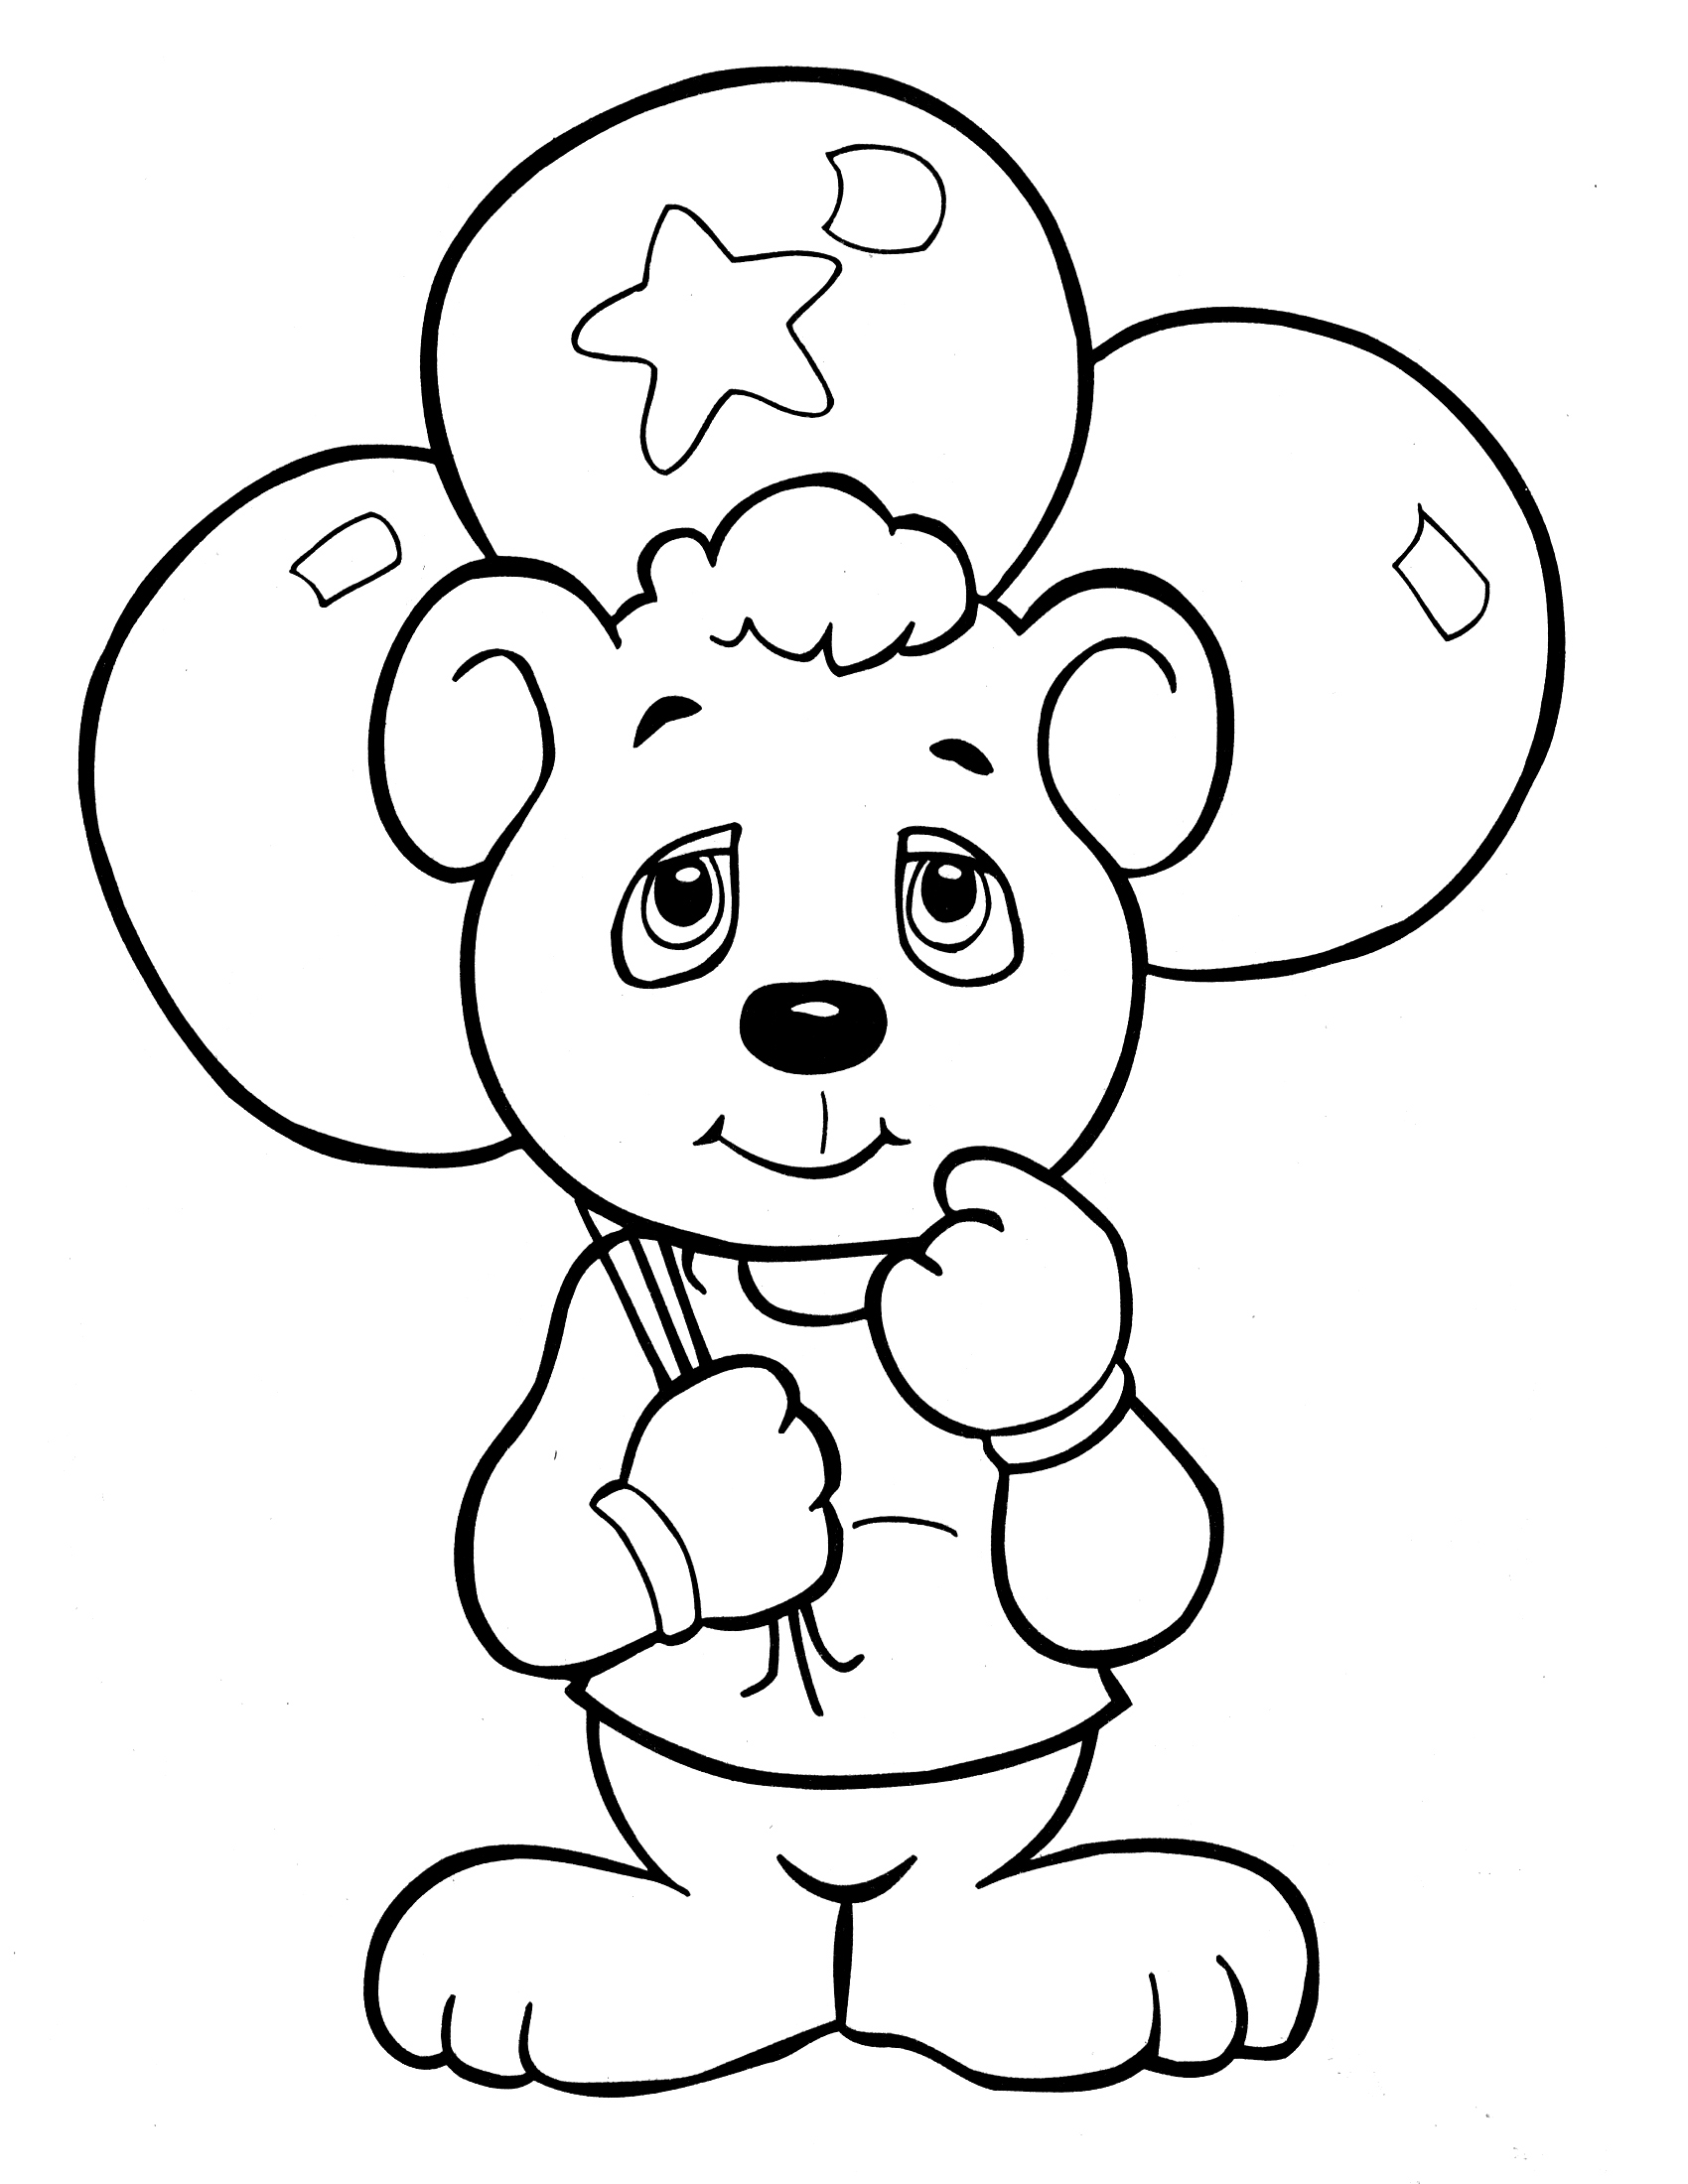 45 Artistic Crayola Coloring Pages